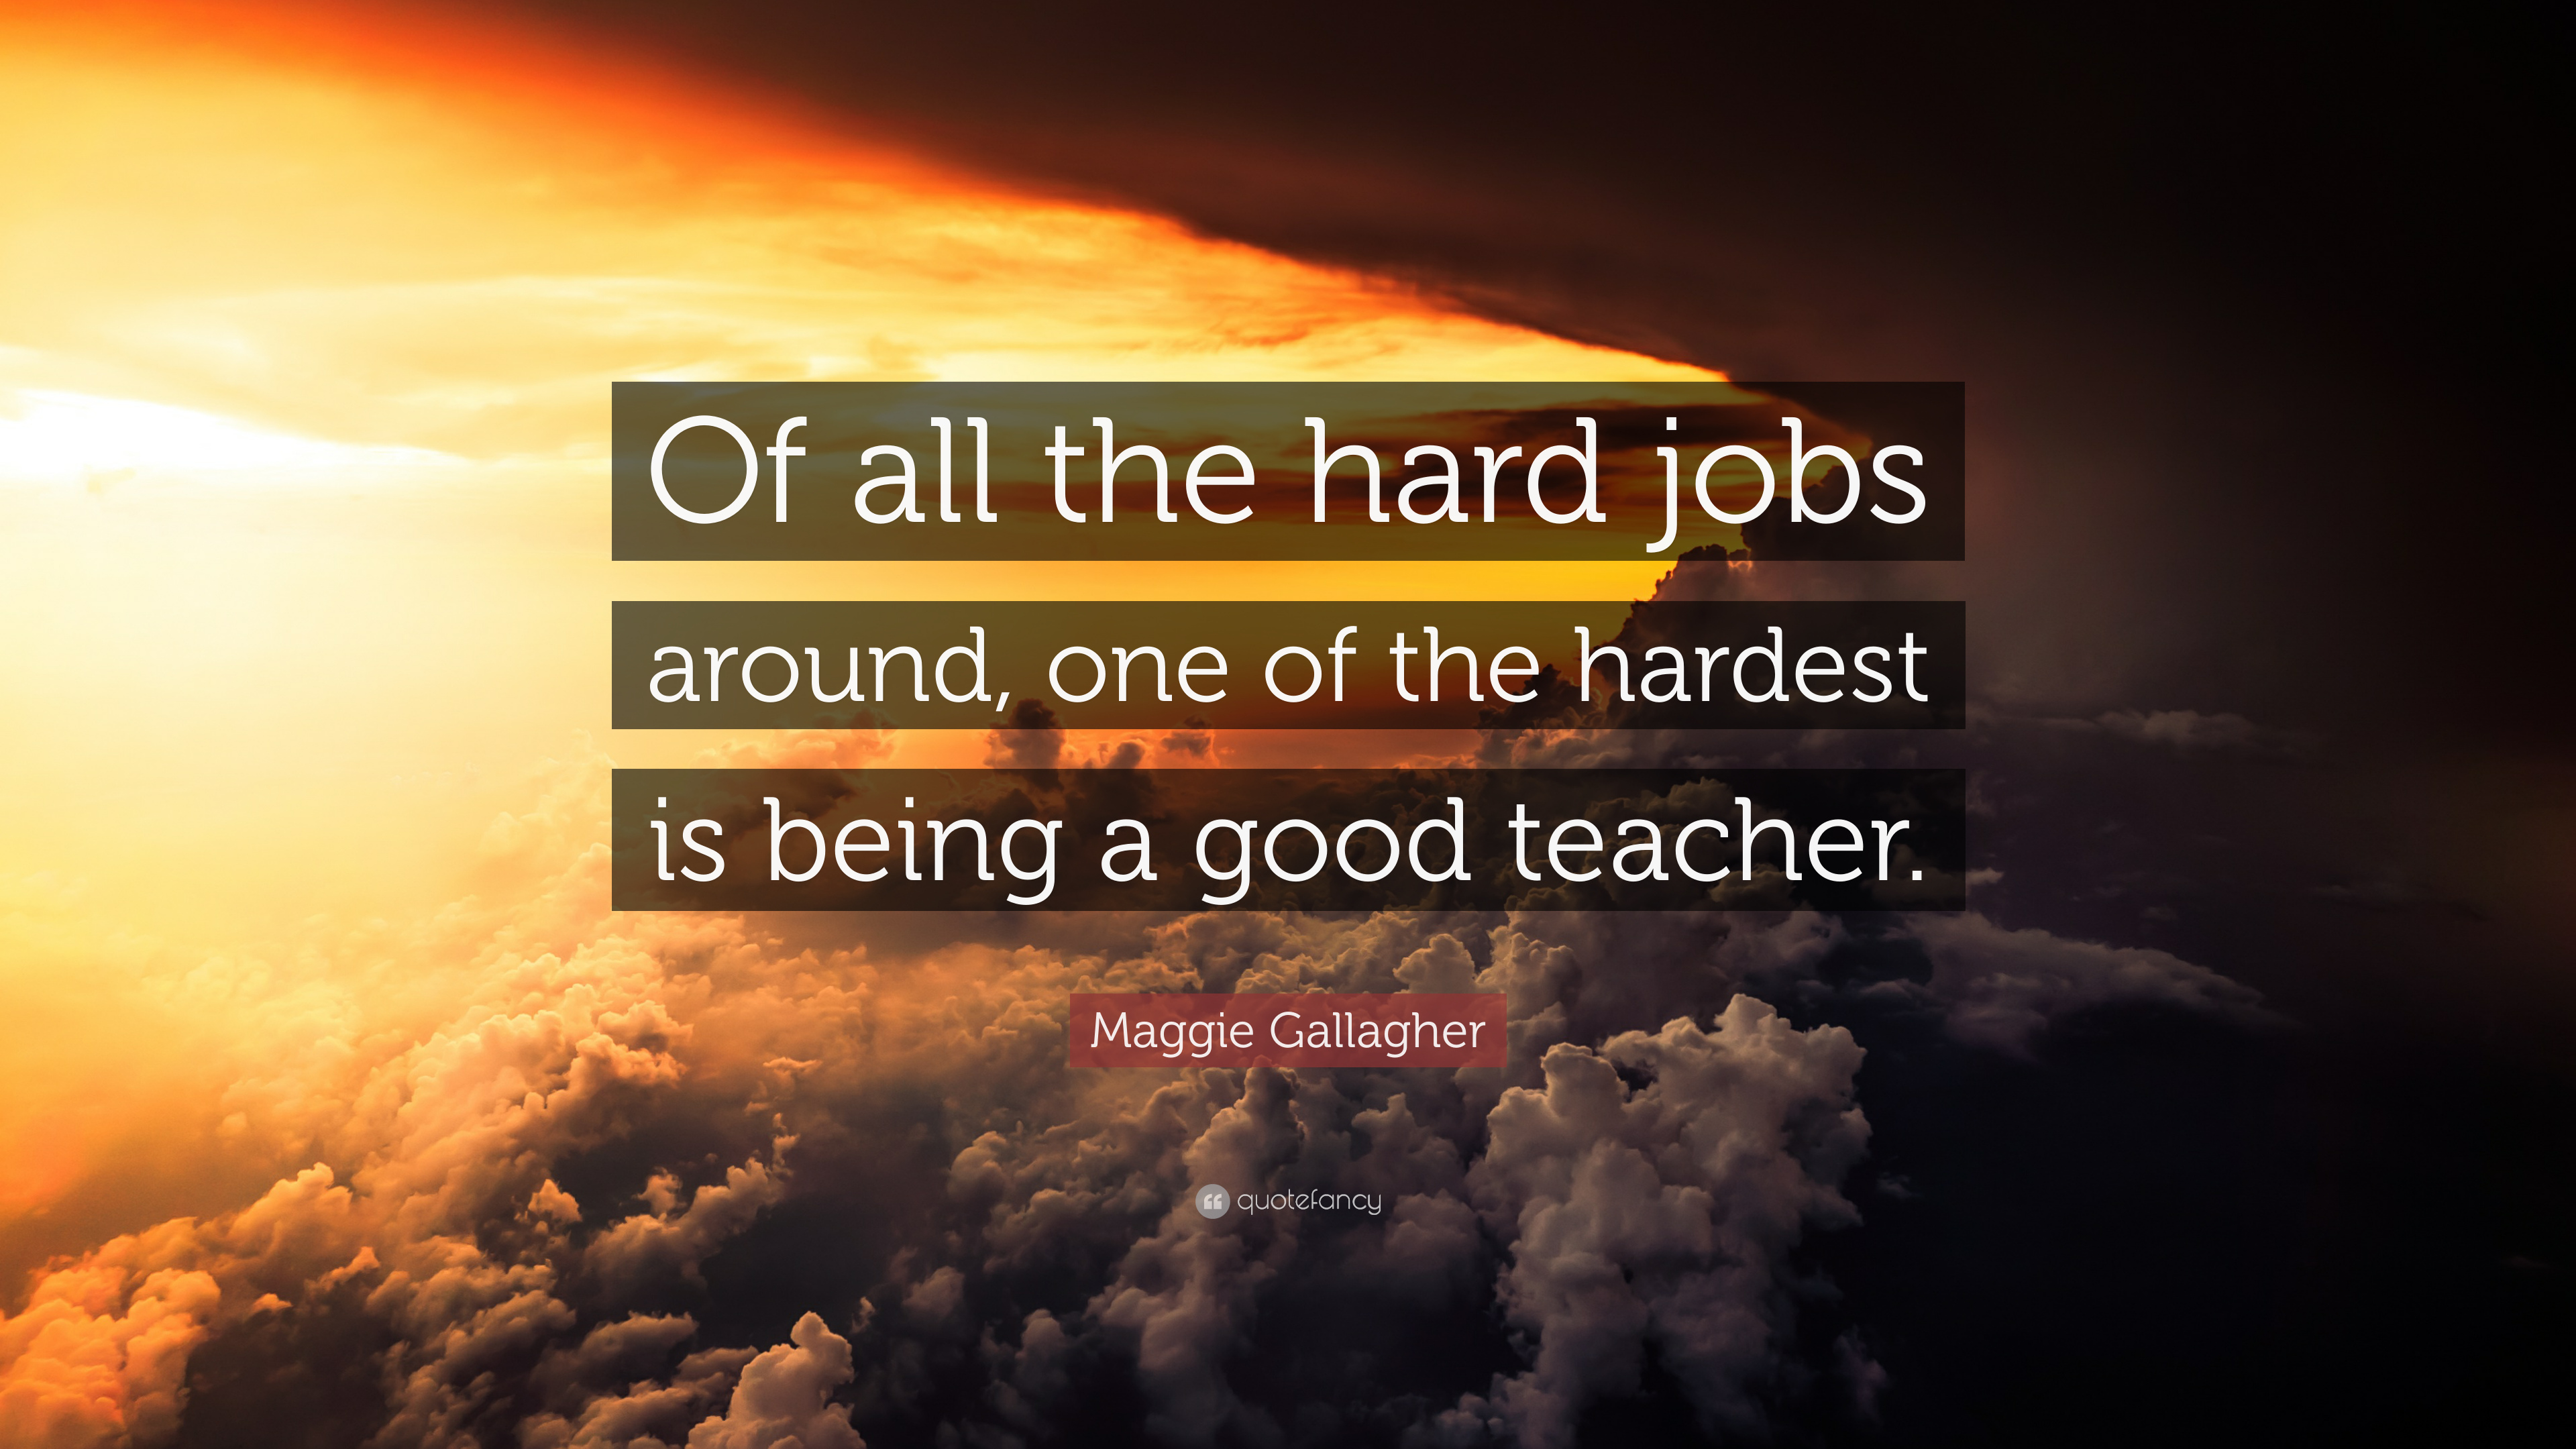 maggie gallagher quote of all the hard jobs around one of the